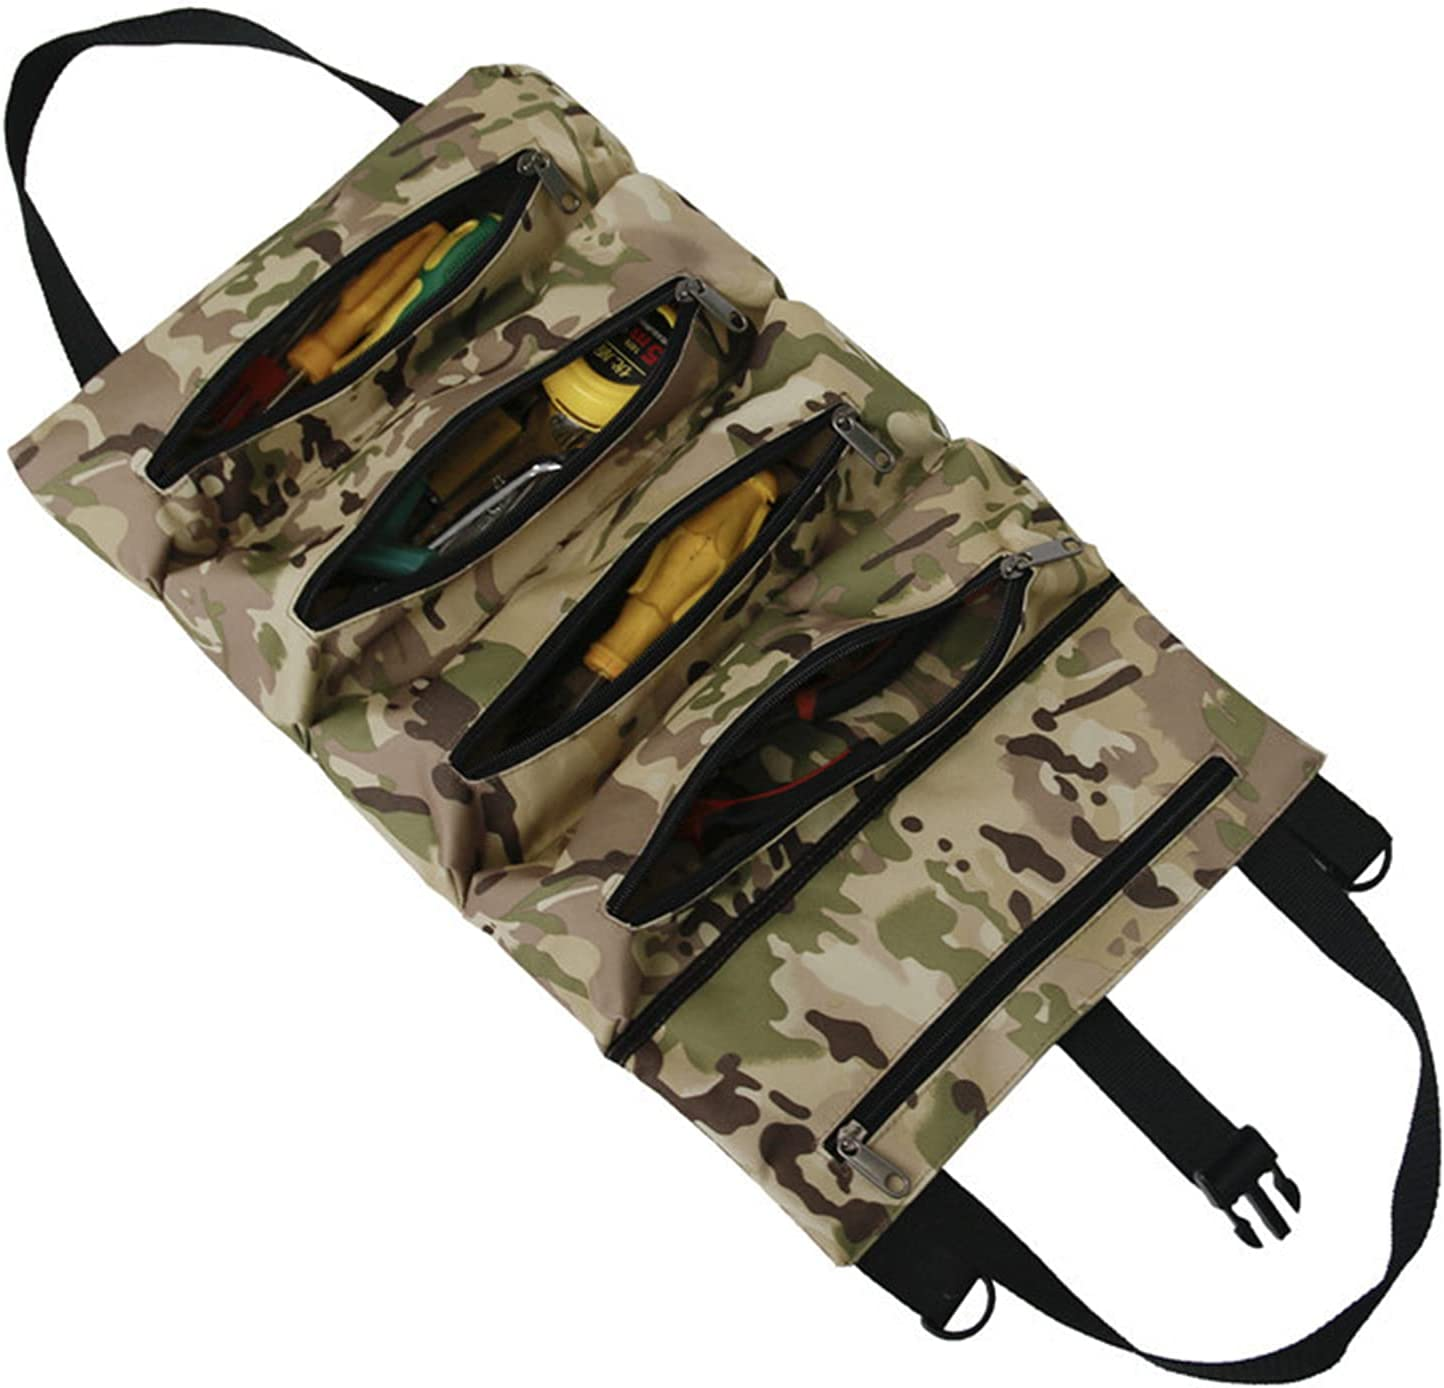 OhhGo Roll-up Tool Albuquerque Mall Bag Oxford Pouch Multi-Pur Hanging Popular products Cloth